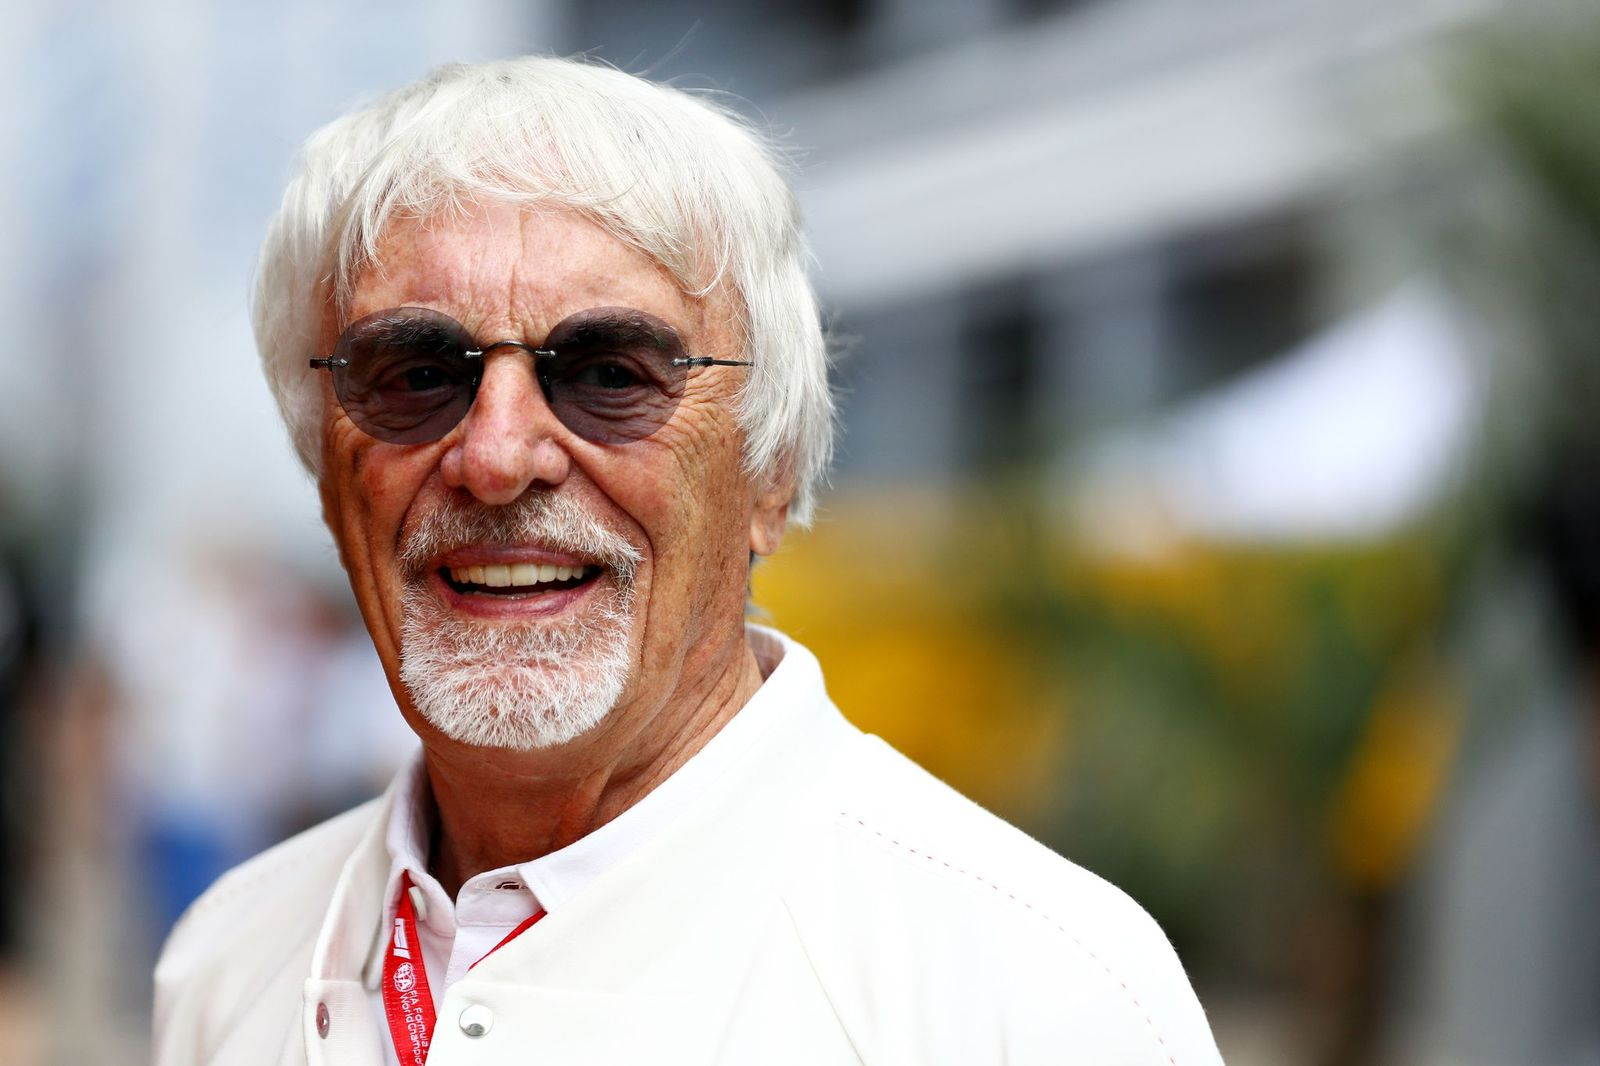 Bernie Ecclestone, Chairman Emeritus at the final practice for the F1 Grand Prix of Russia at Sochi Autodrom on September 28, 2019 | Photo: Getty Images